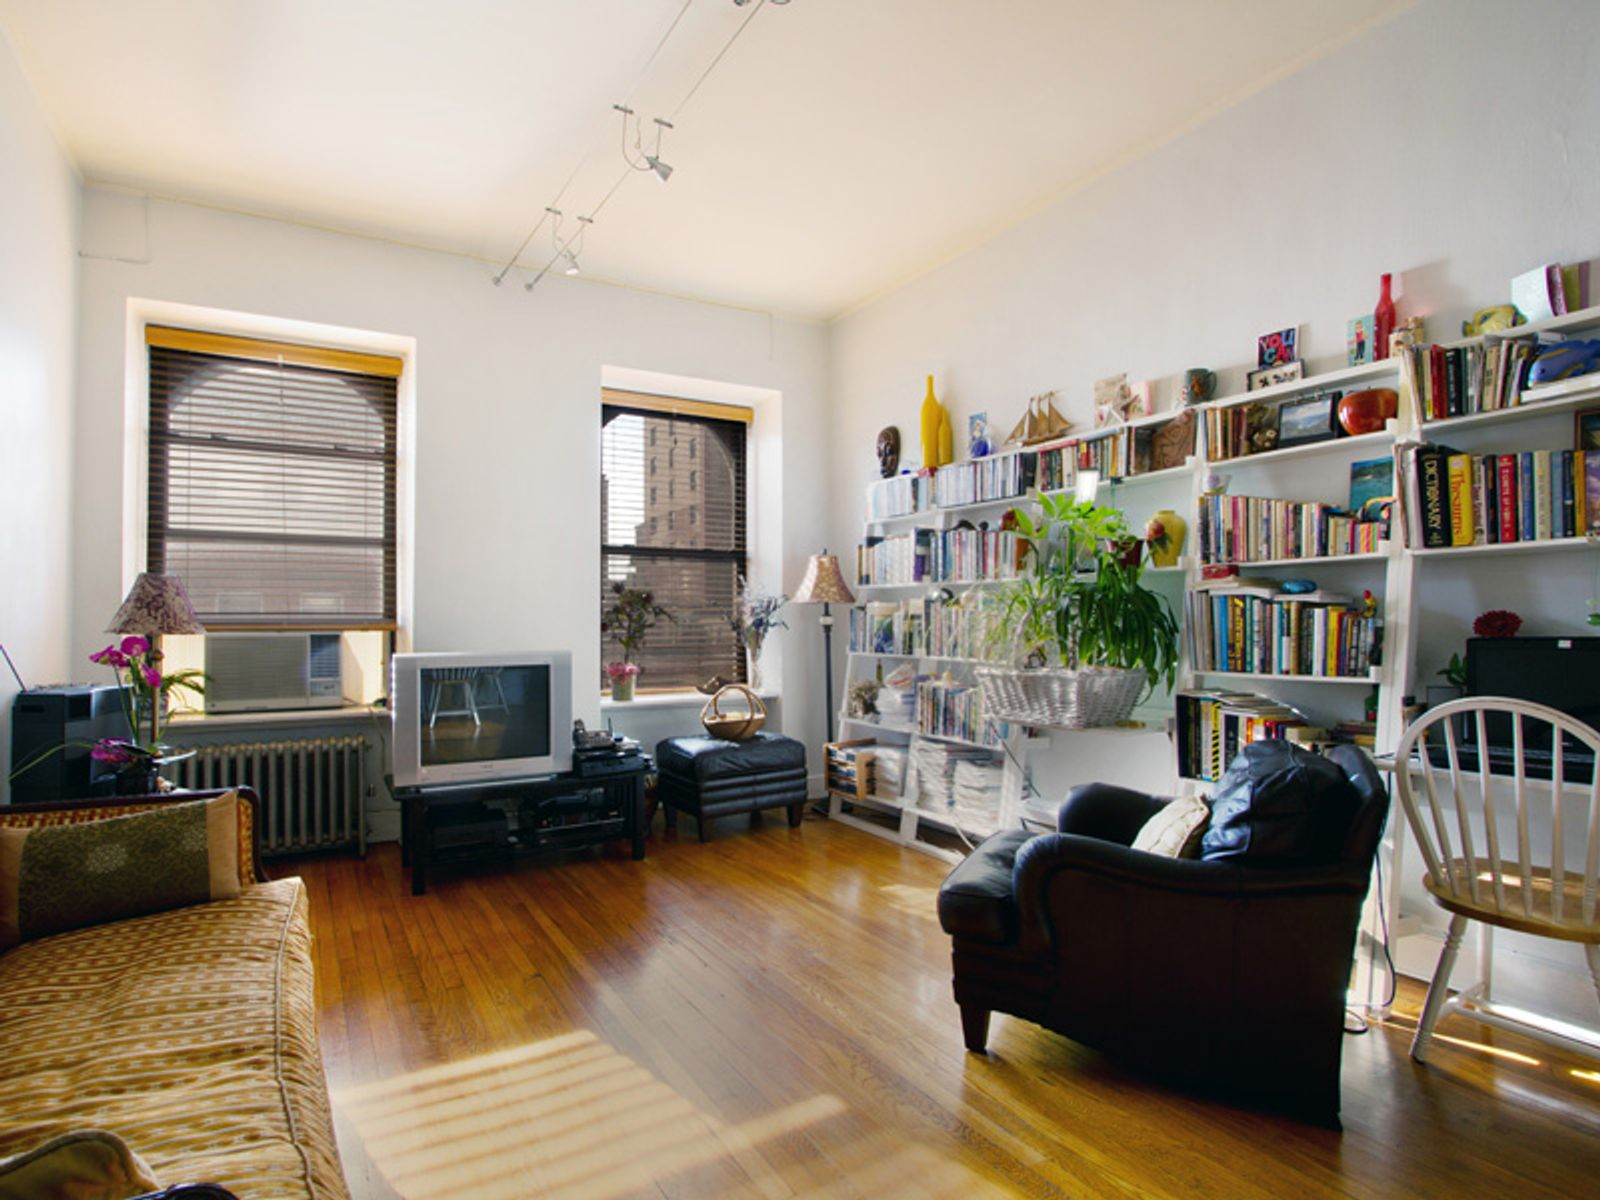 215 West 105th Street, New York NY Cooperative - New York City Real Estate